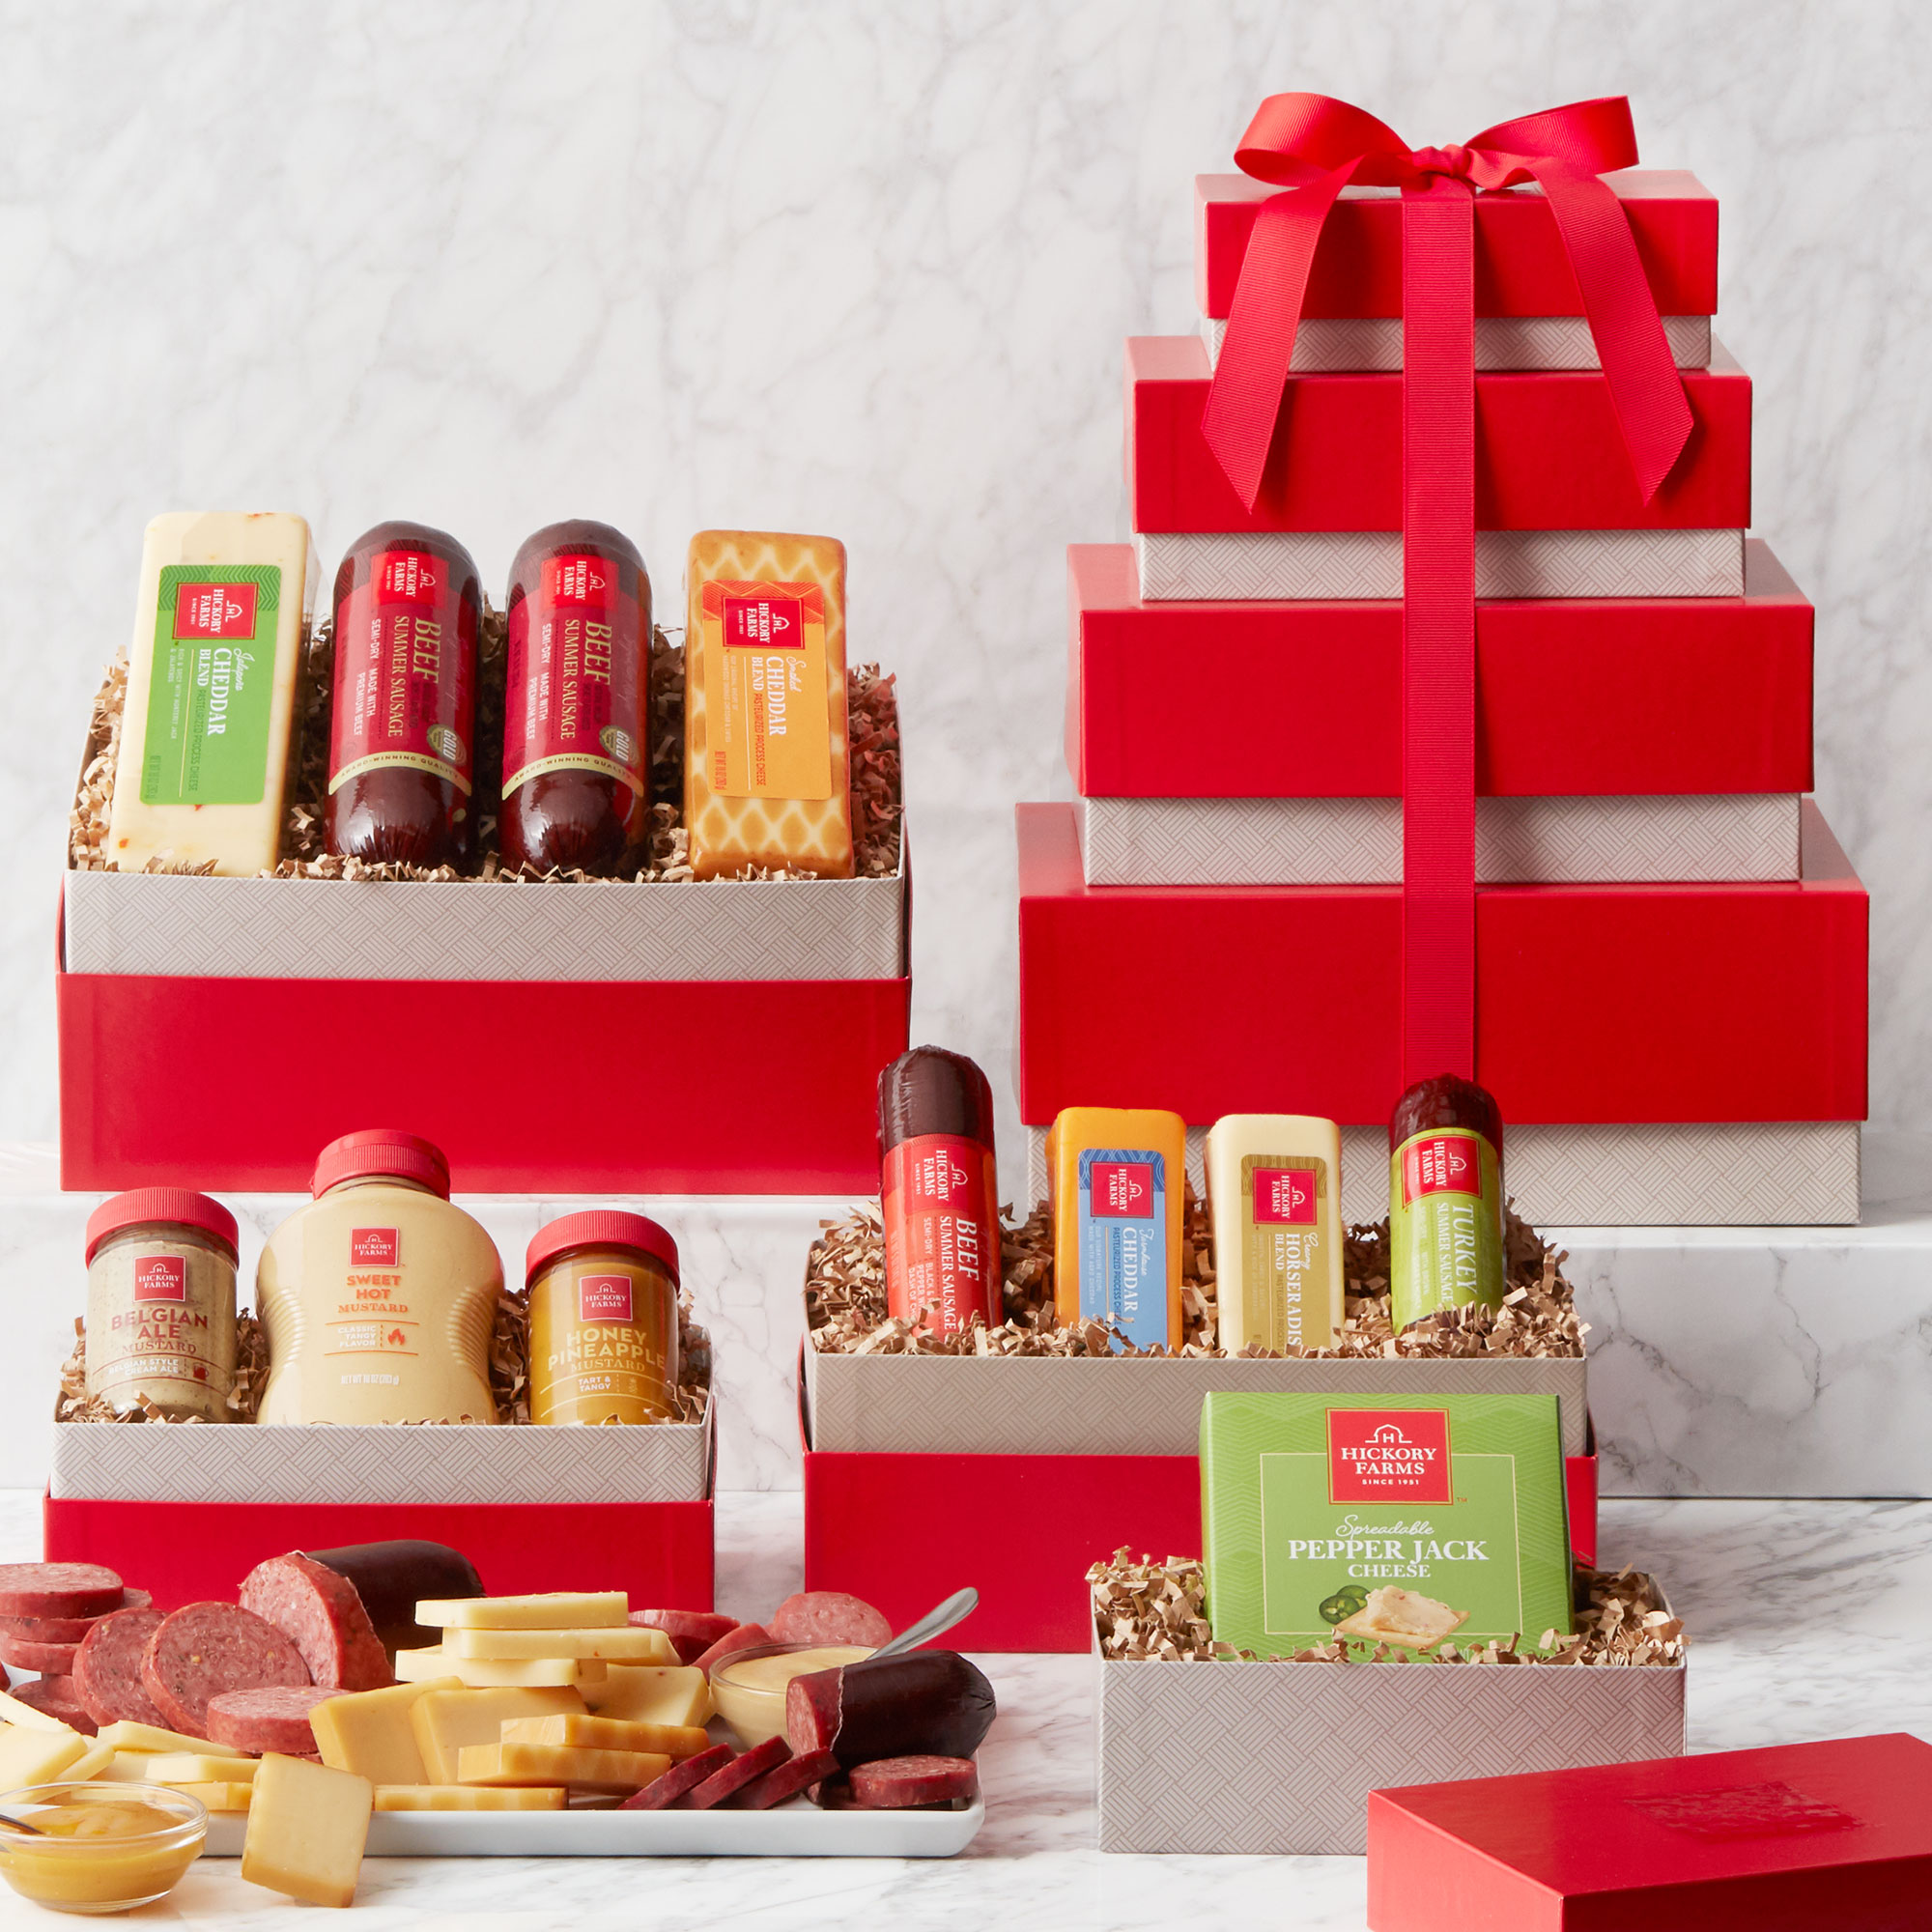 Gourmet Meat & Cheese Gift Tower